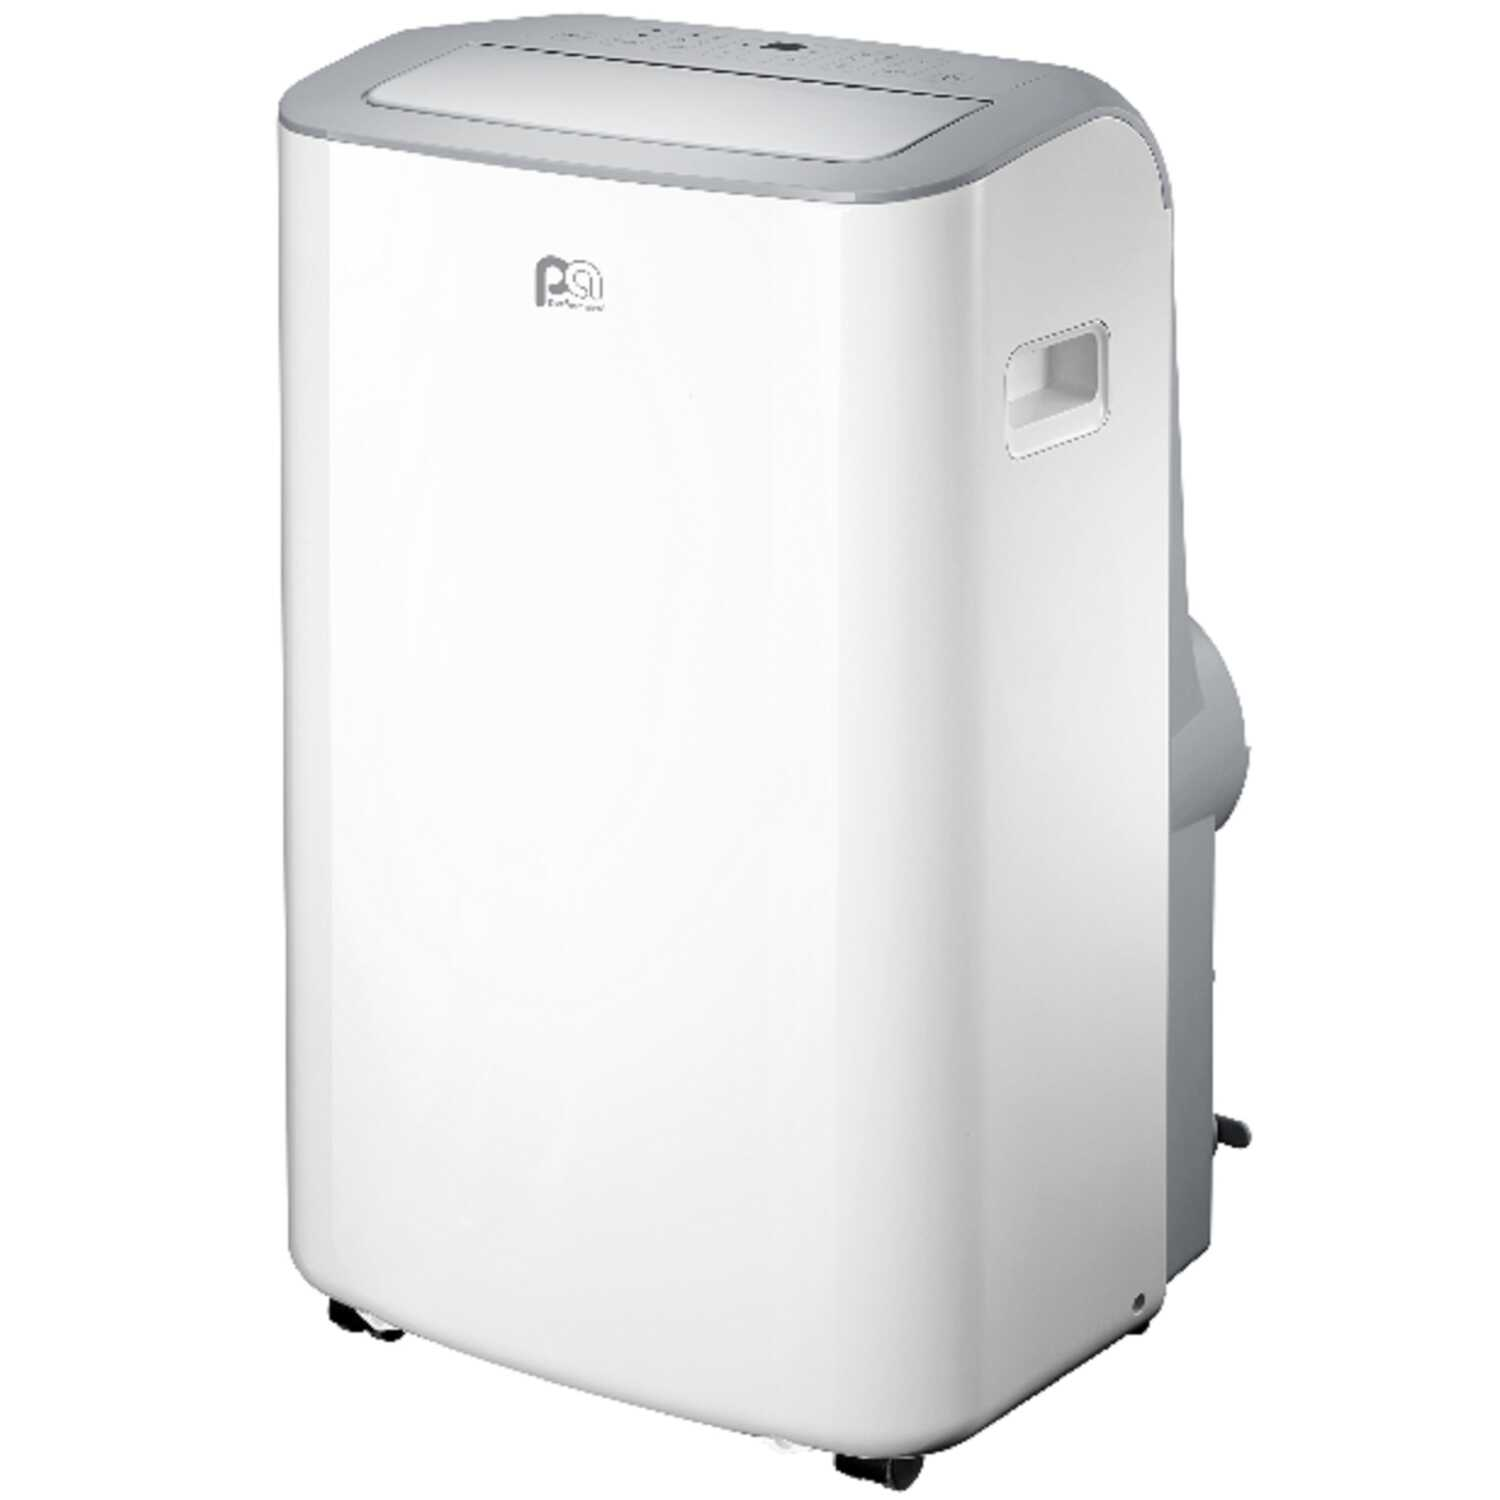 Perfect Aire  450 sq. ft. 3 speed 14,000 BTU Portable Air Conditioner with Heat